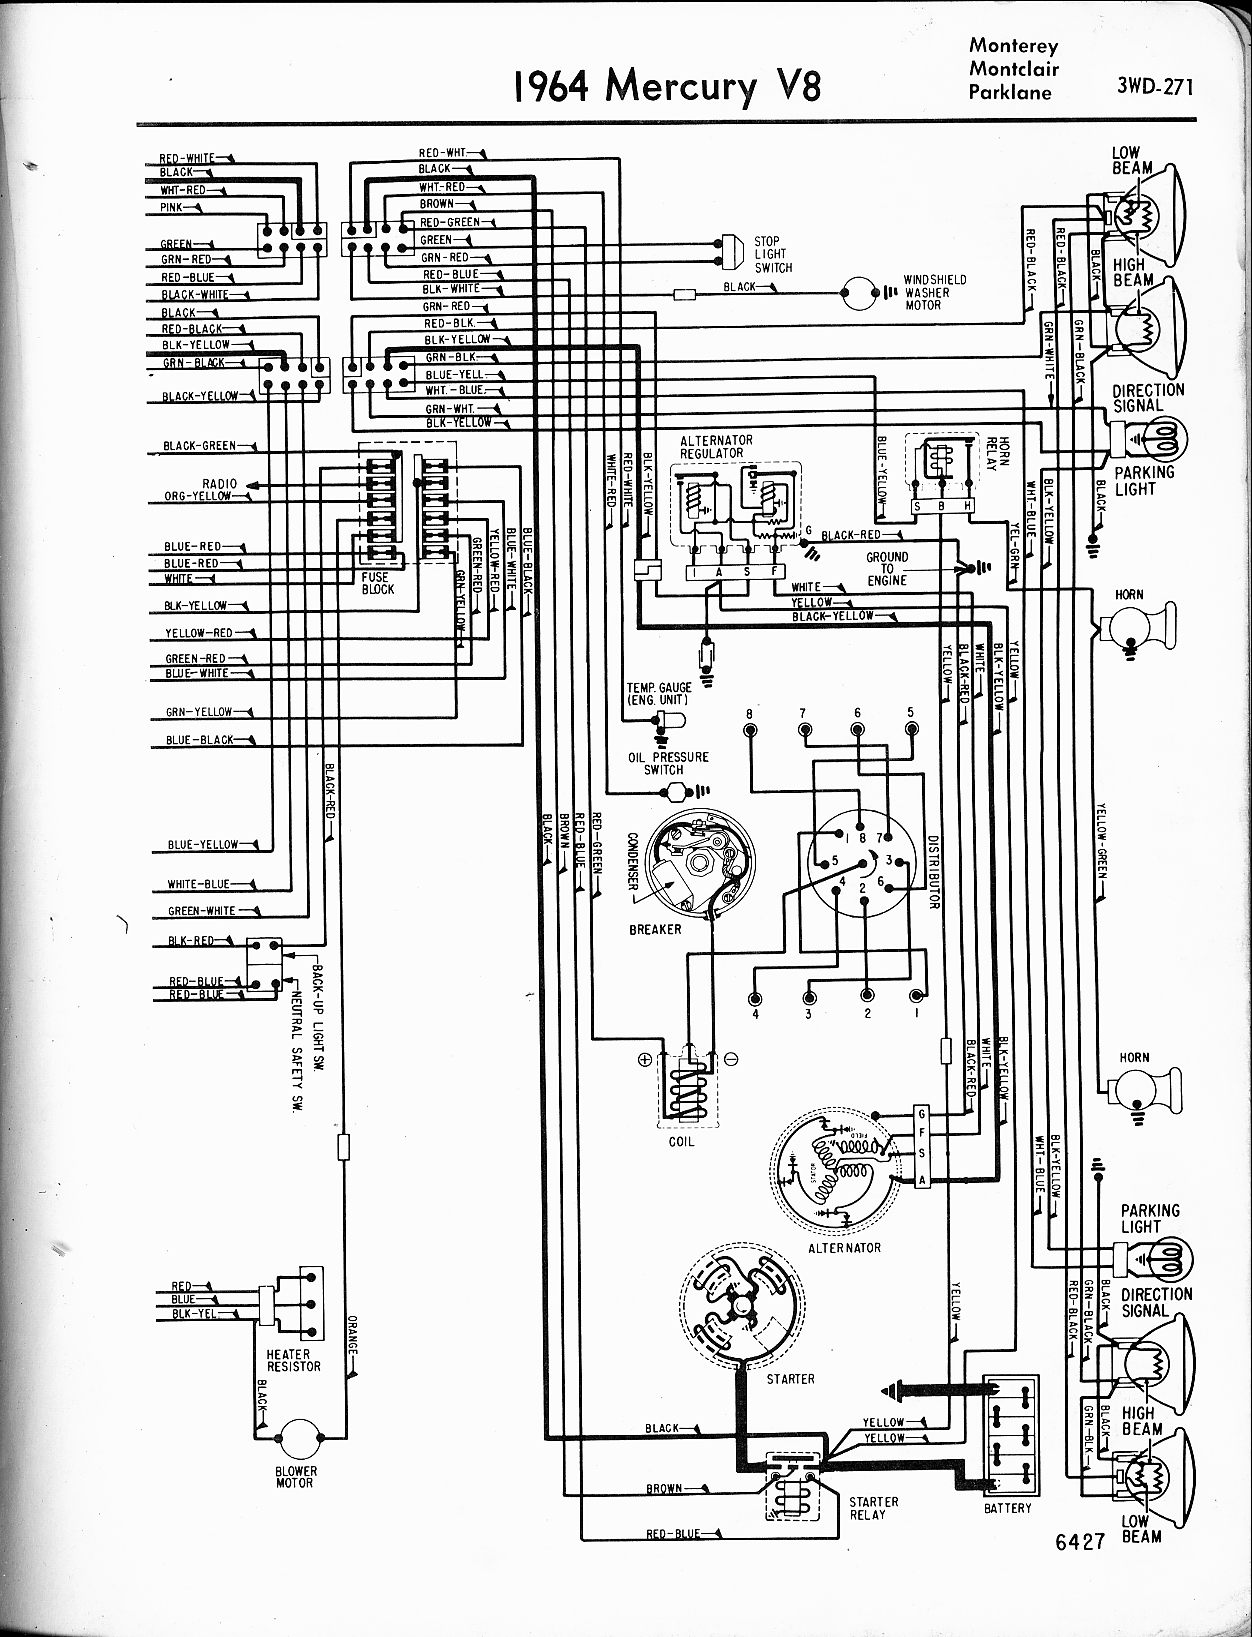 1969 ford ltd wiring diagram schematic wiring diagram 1969 Ford Custom 500 Wiring Diagram 1969 ford ltd wiring diagram schematic wiring diagram1969 ford ltd wiring diagram schematic wiring library1966 mercury